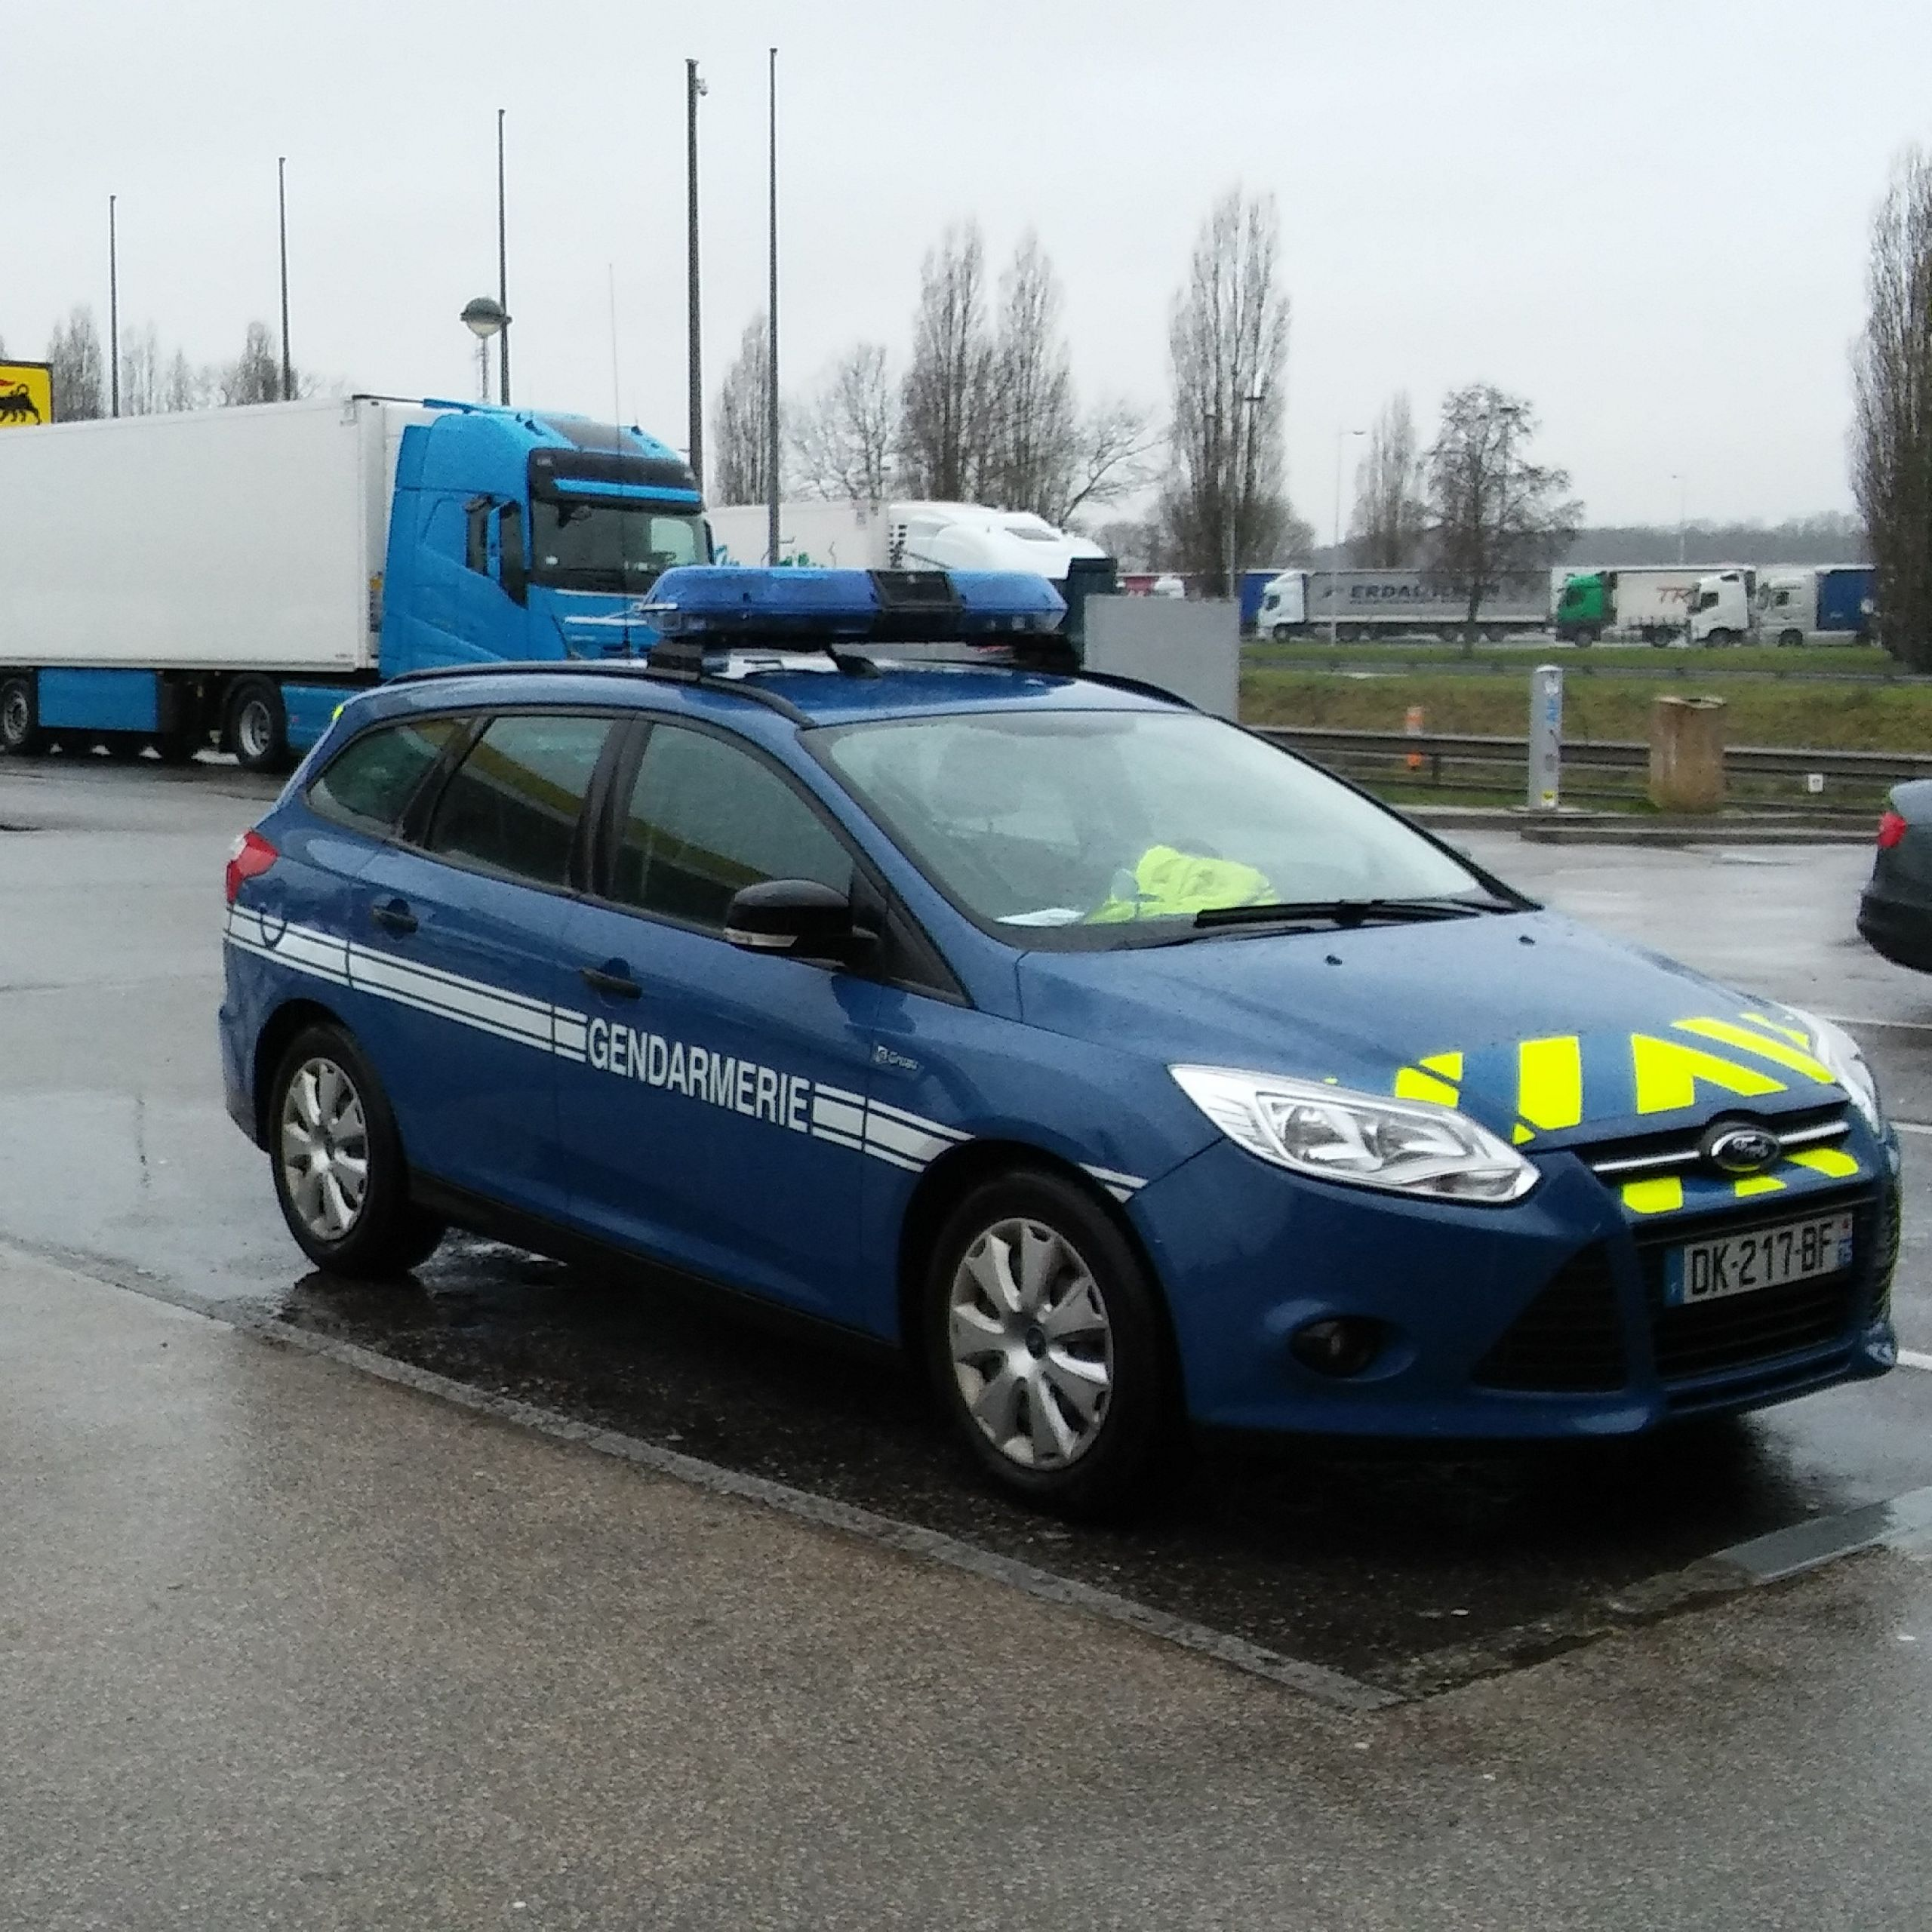 Ford Focus 2016 New File Gendarmerie Nationale ford Focus Wikimedia Mons